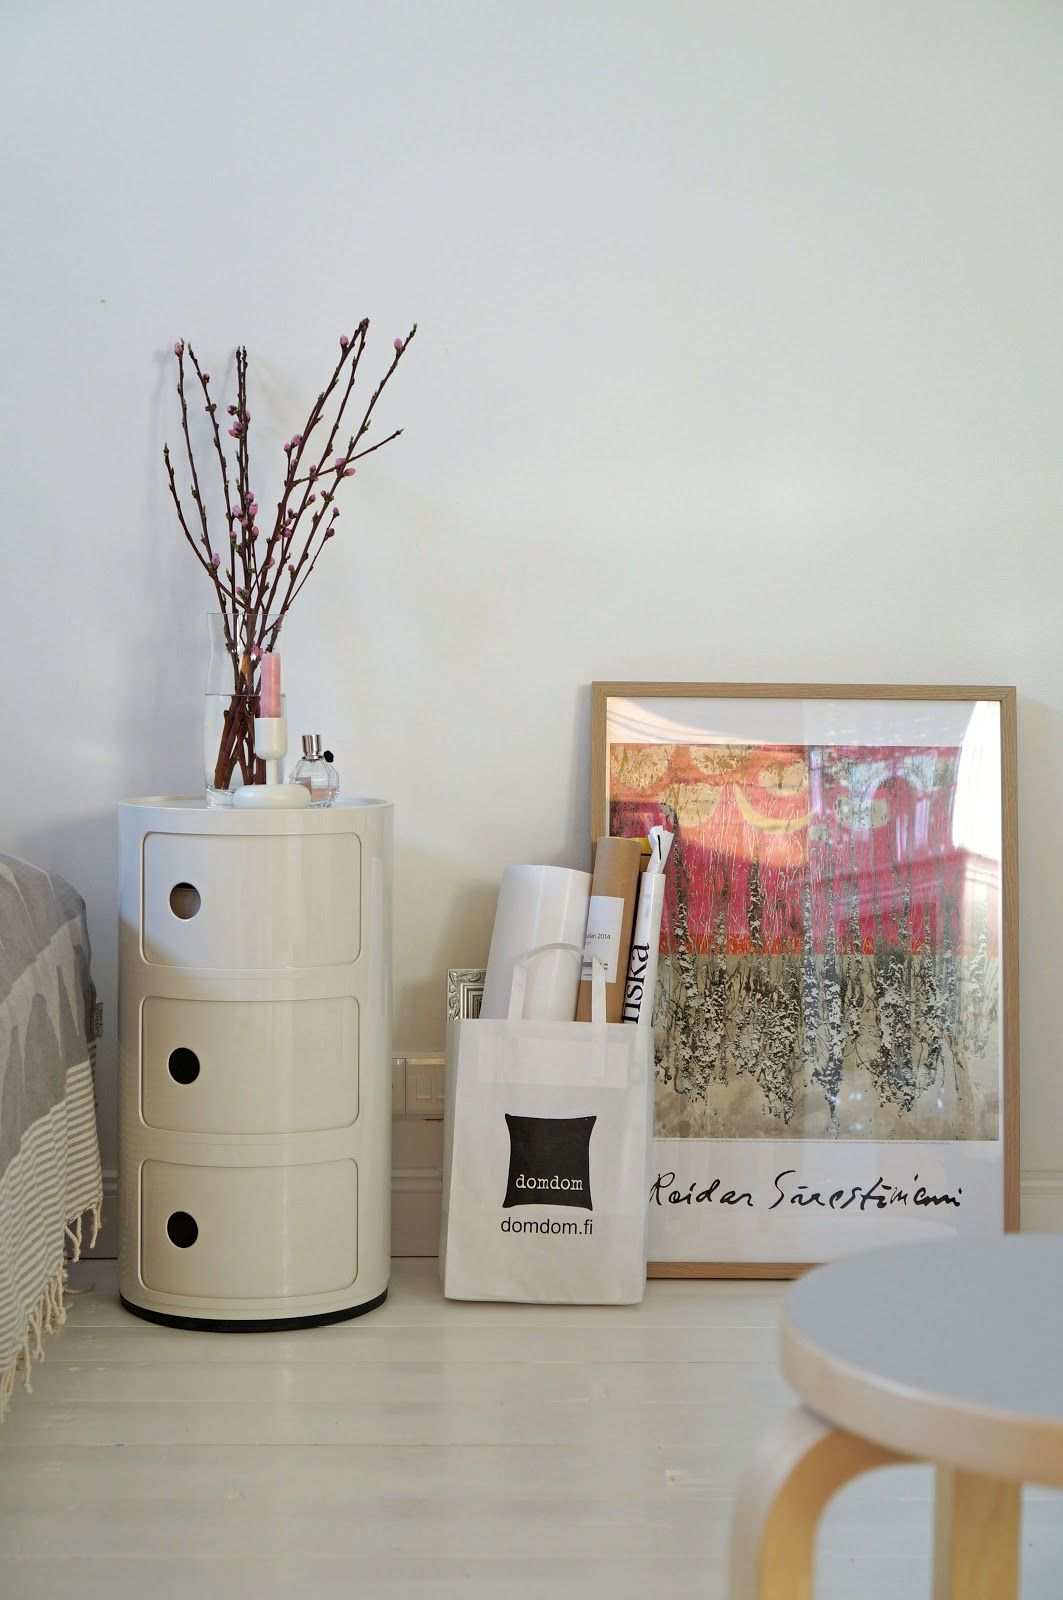 Cherry tree and Nappula on Componibili  http://valentinesafter12.blogspot.fi